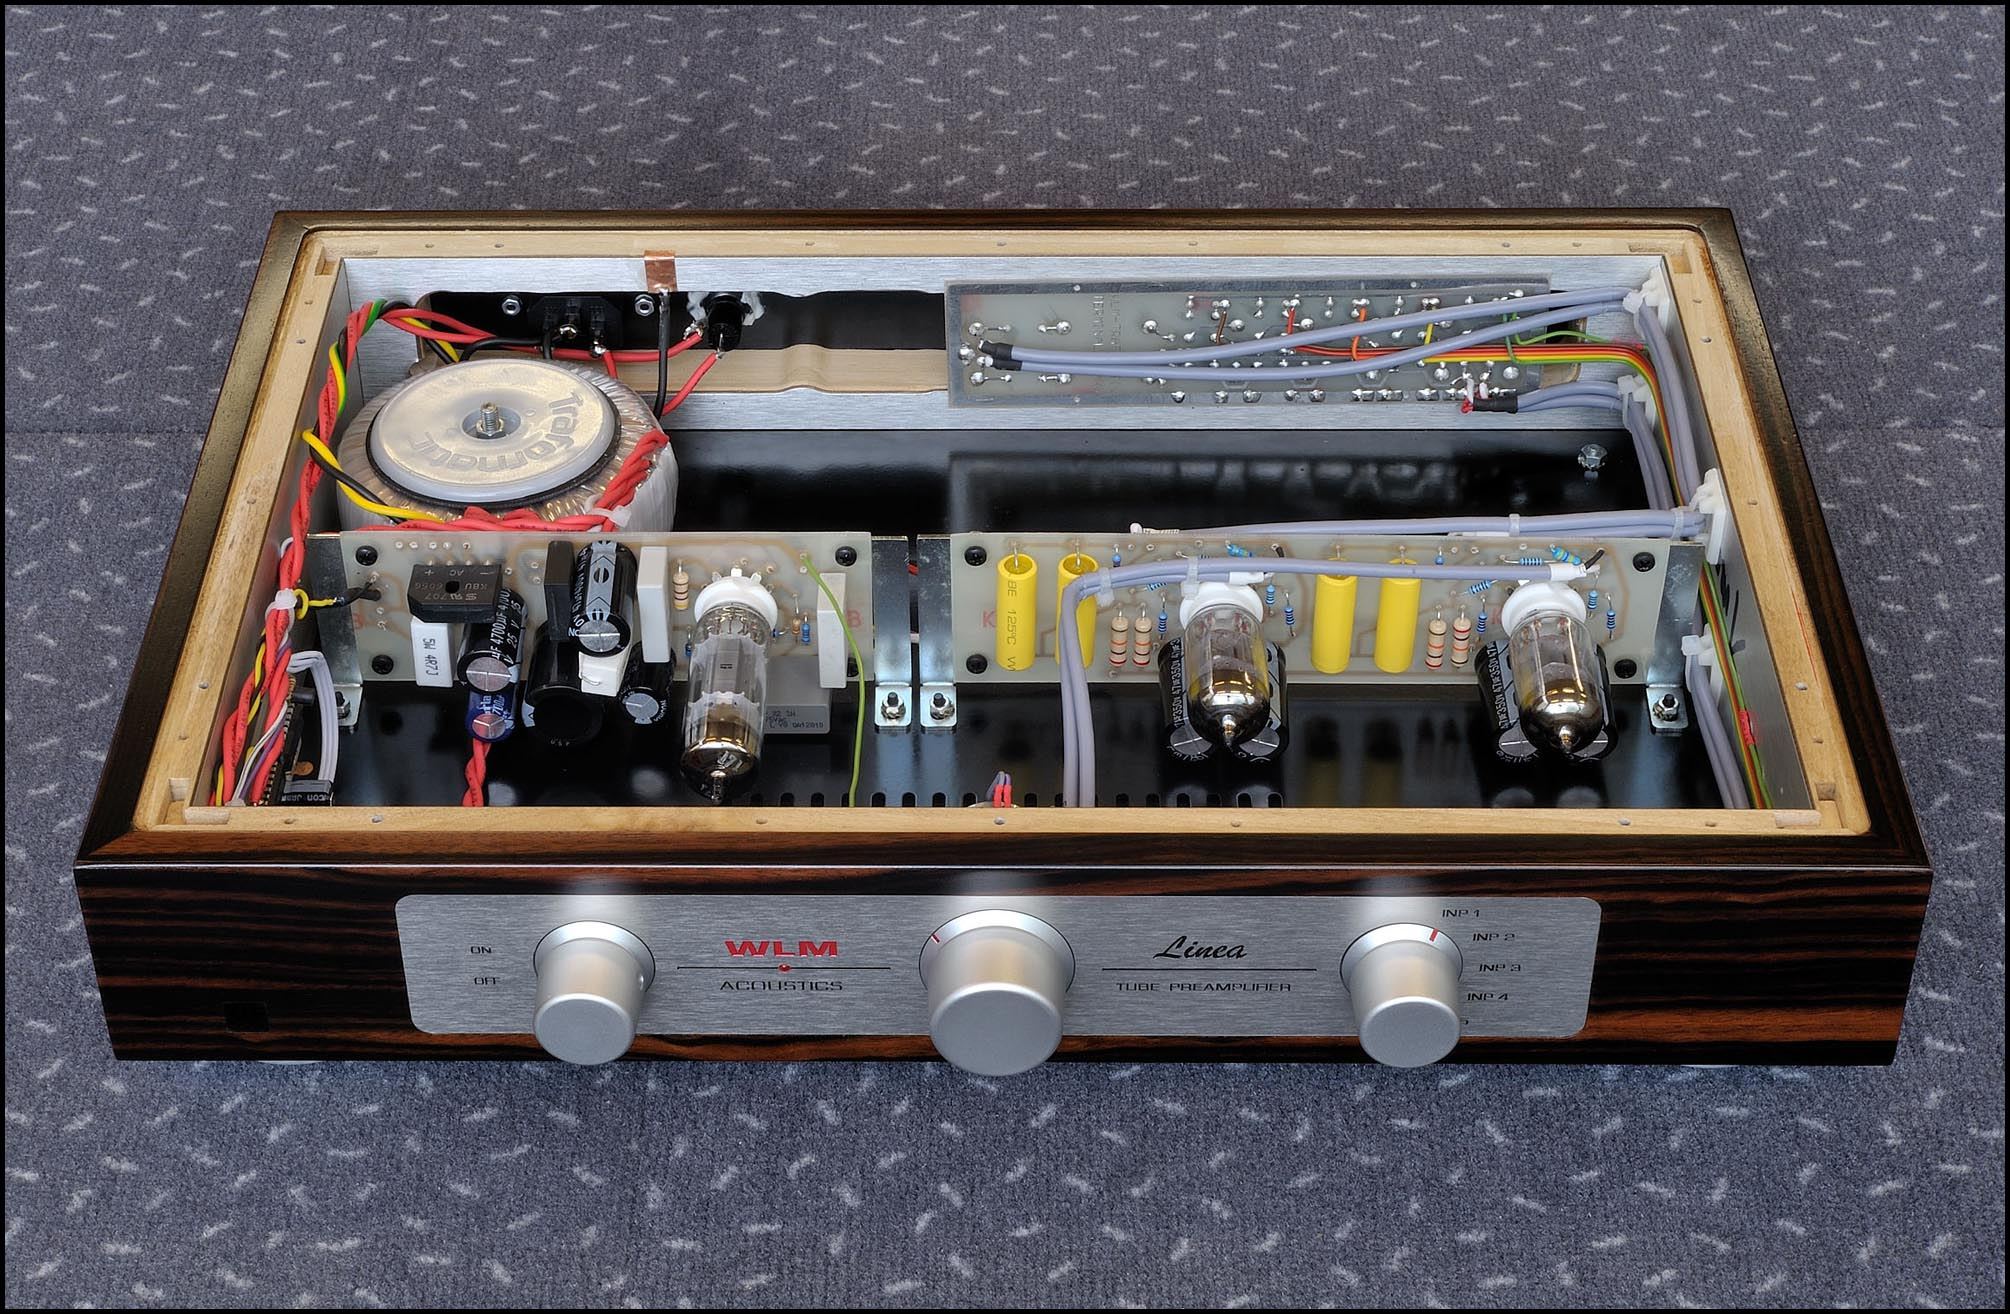 6moons Audio Reviews Trafomatic Experience Head One Preamplifier 1 Once The Wlm Project Had Aced Proof Of Concept Hurdle Sound And Bigger Austrian Standards Challenge These Designs Can Be Built To Cosmetic Spec